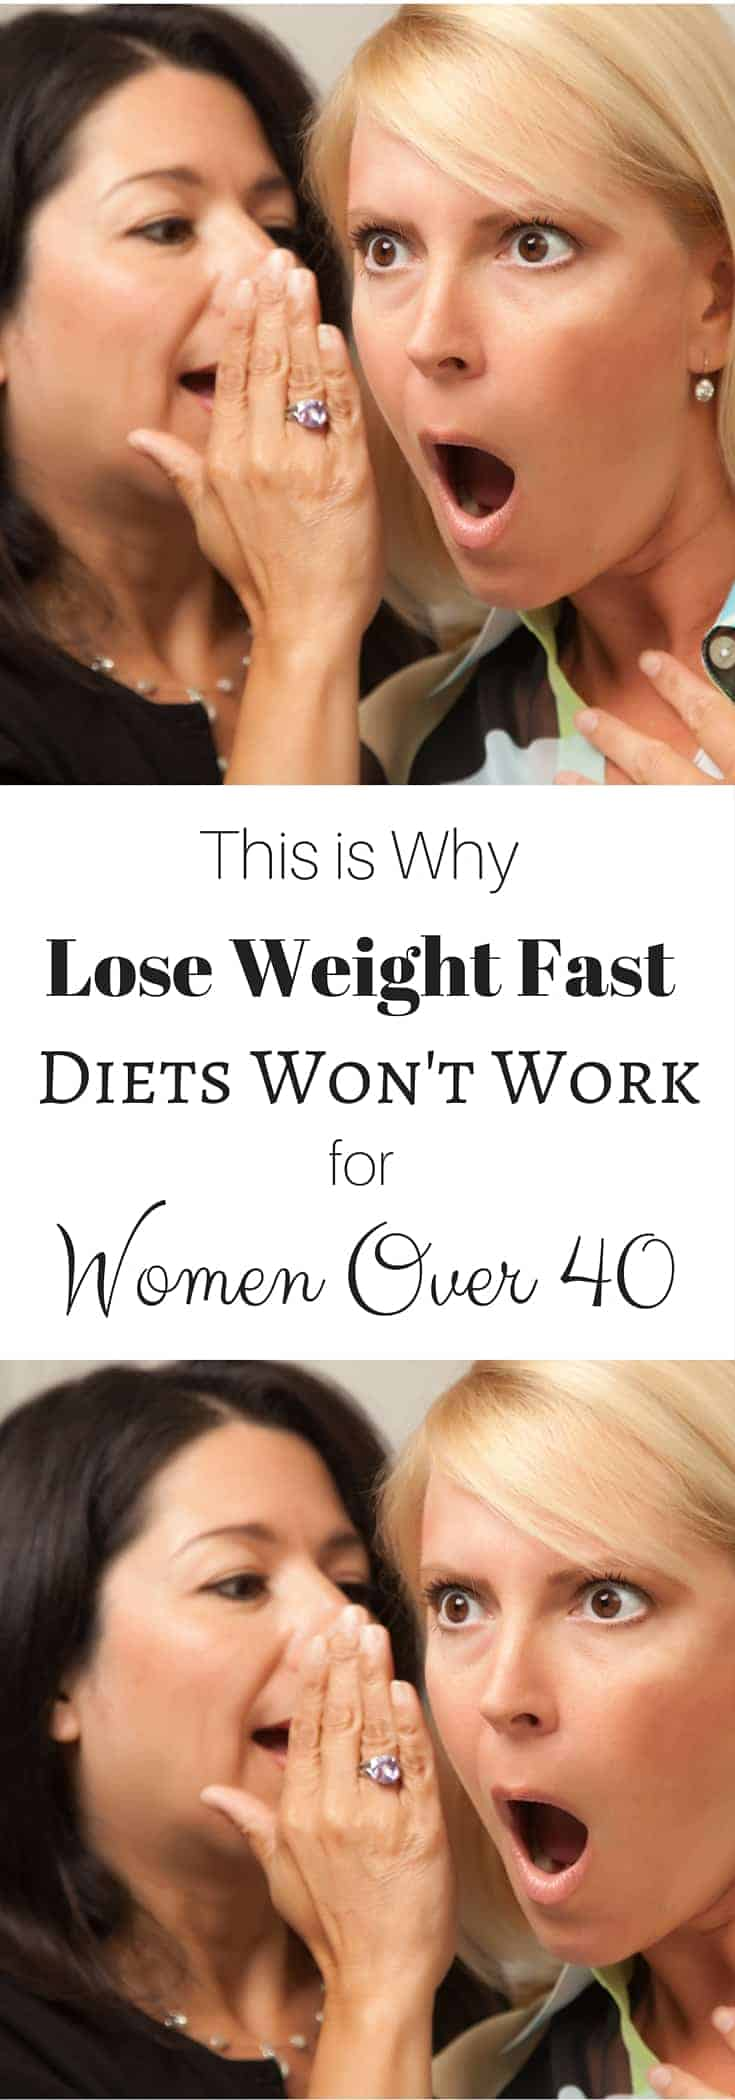 lose weight fast diets